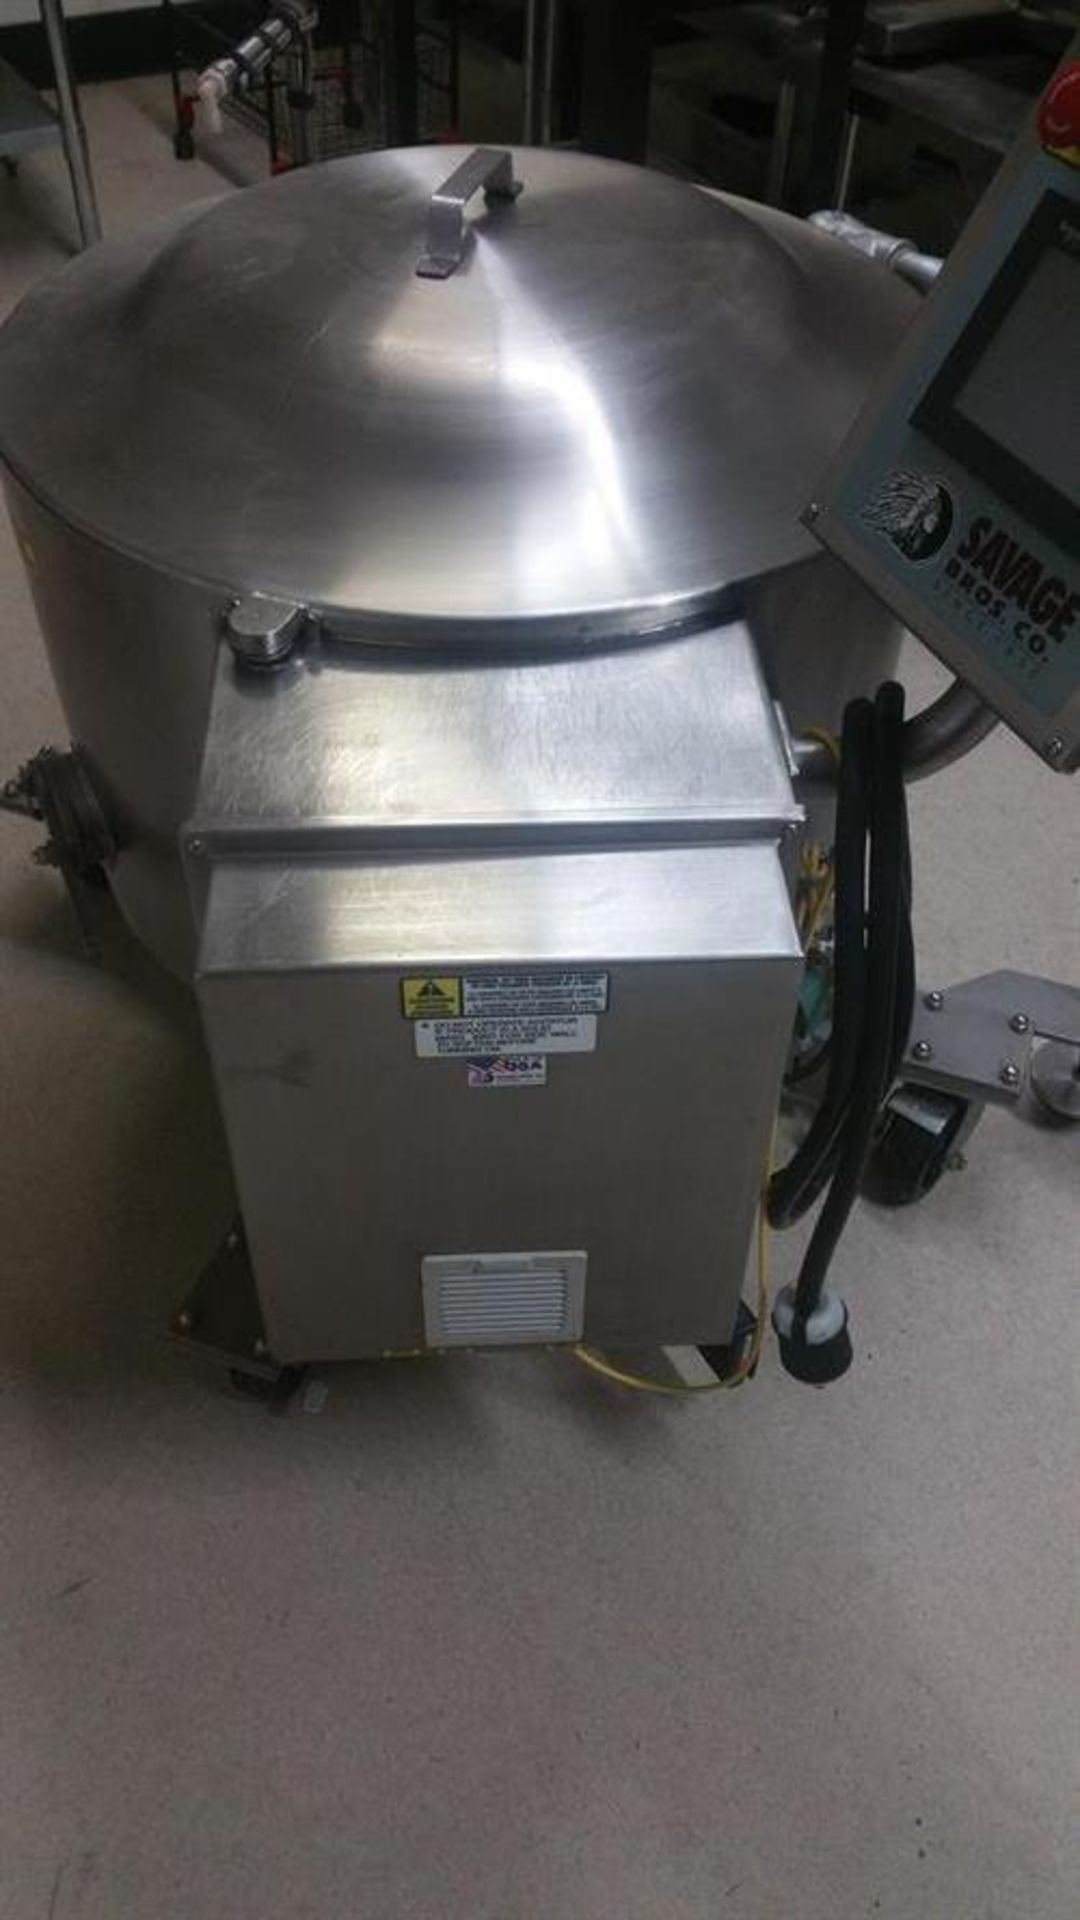 Savage 300-lb Stainless Steel Auto tempering Melter with Metering Pump - All stainless steel - Water - Image 7 of 12